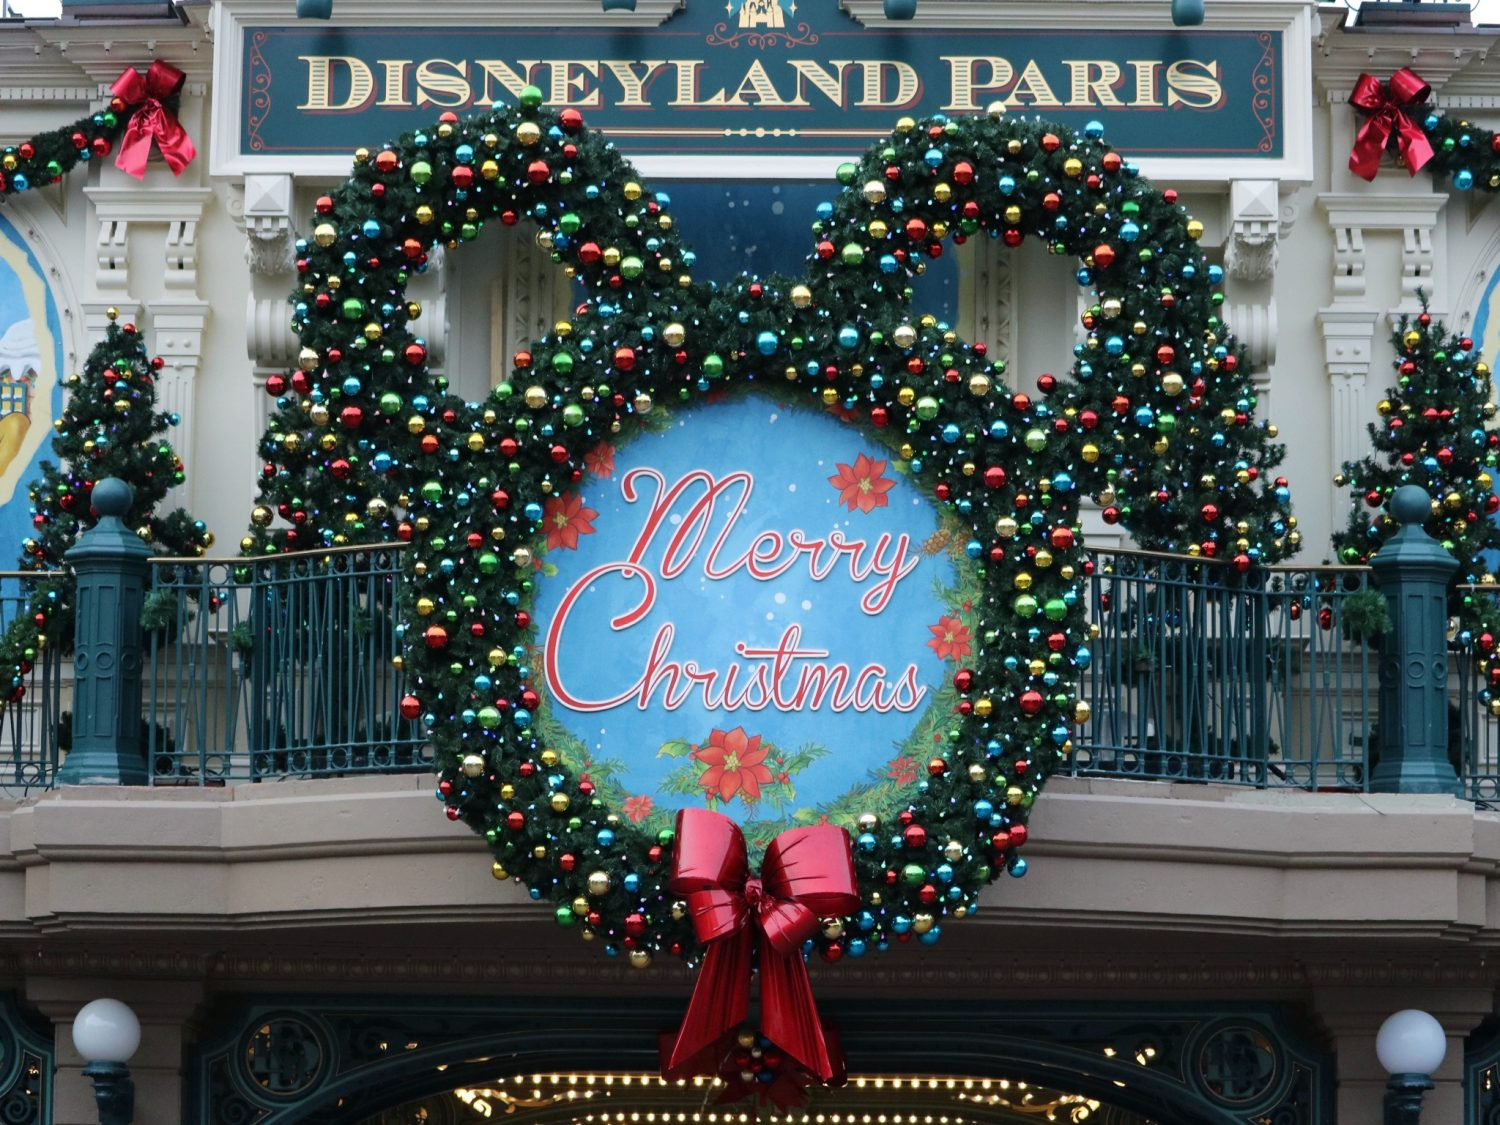 Christmastime at Disneyland Paris